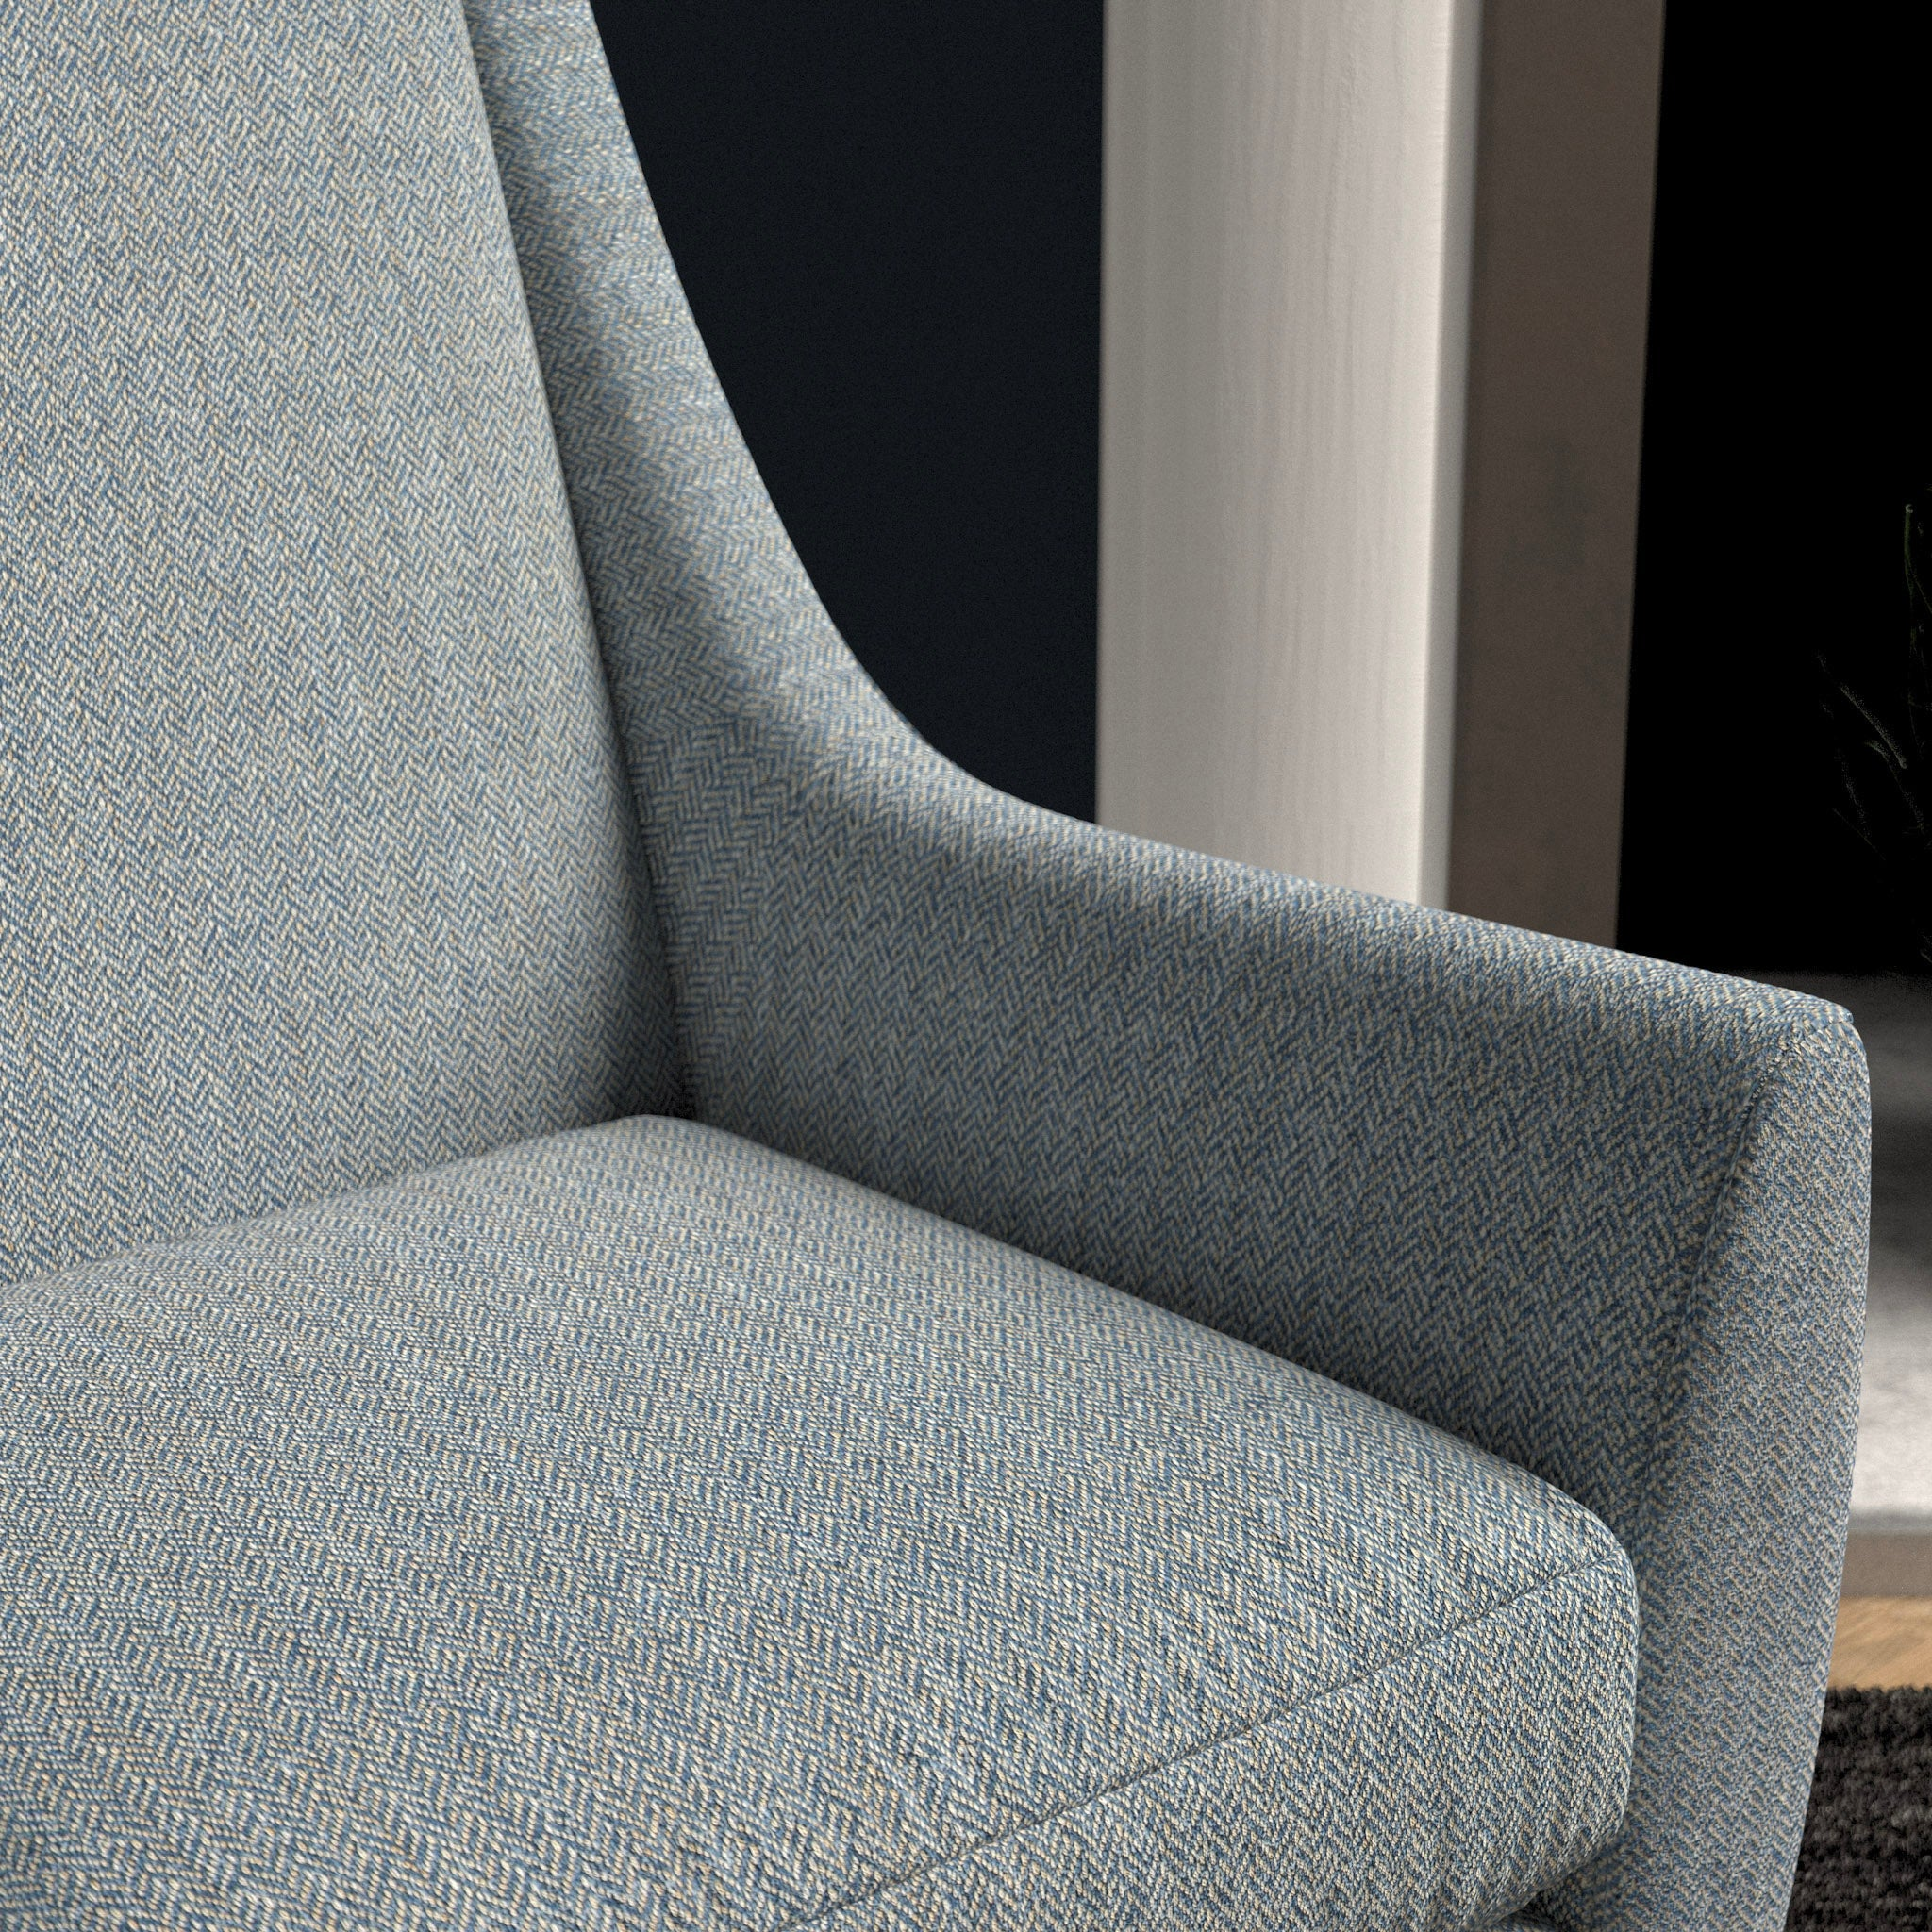 Chair upholstered in a light blue herringbone wool weave upholstery fabric